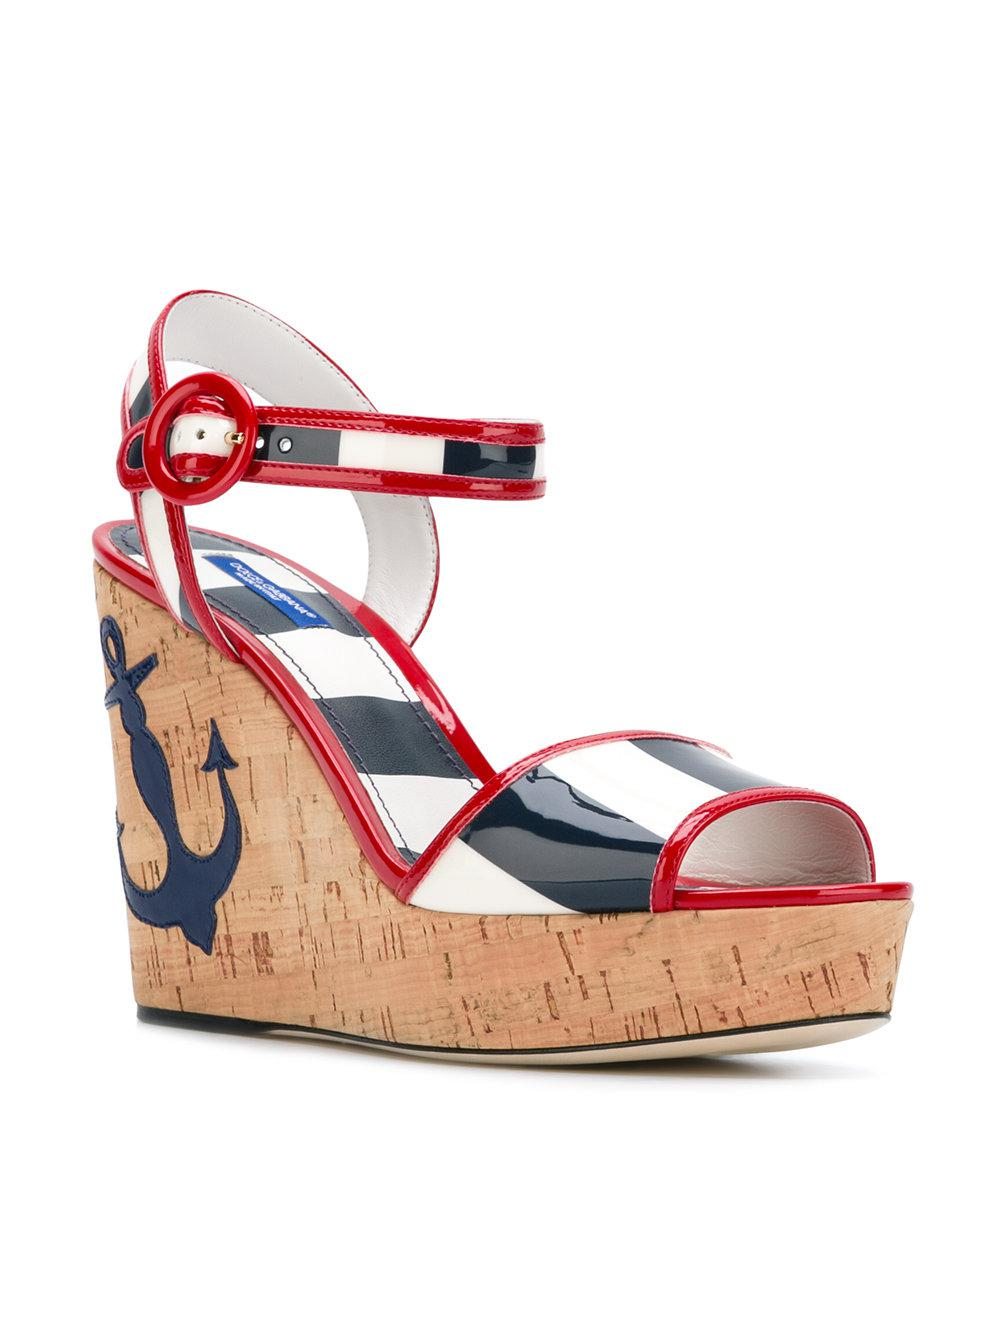 88f6d216807 Dolce   Gabbana Keira Wedge Sandals in Red - Lyst